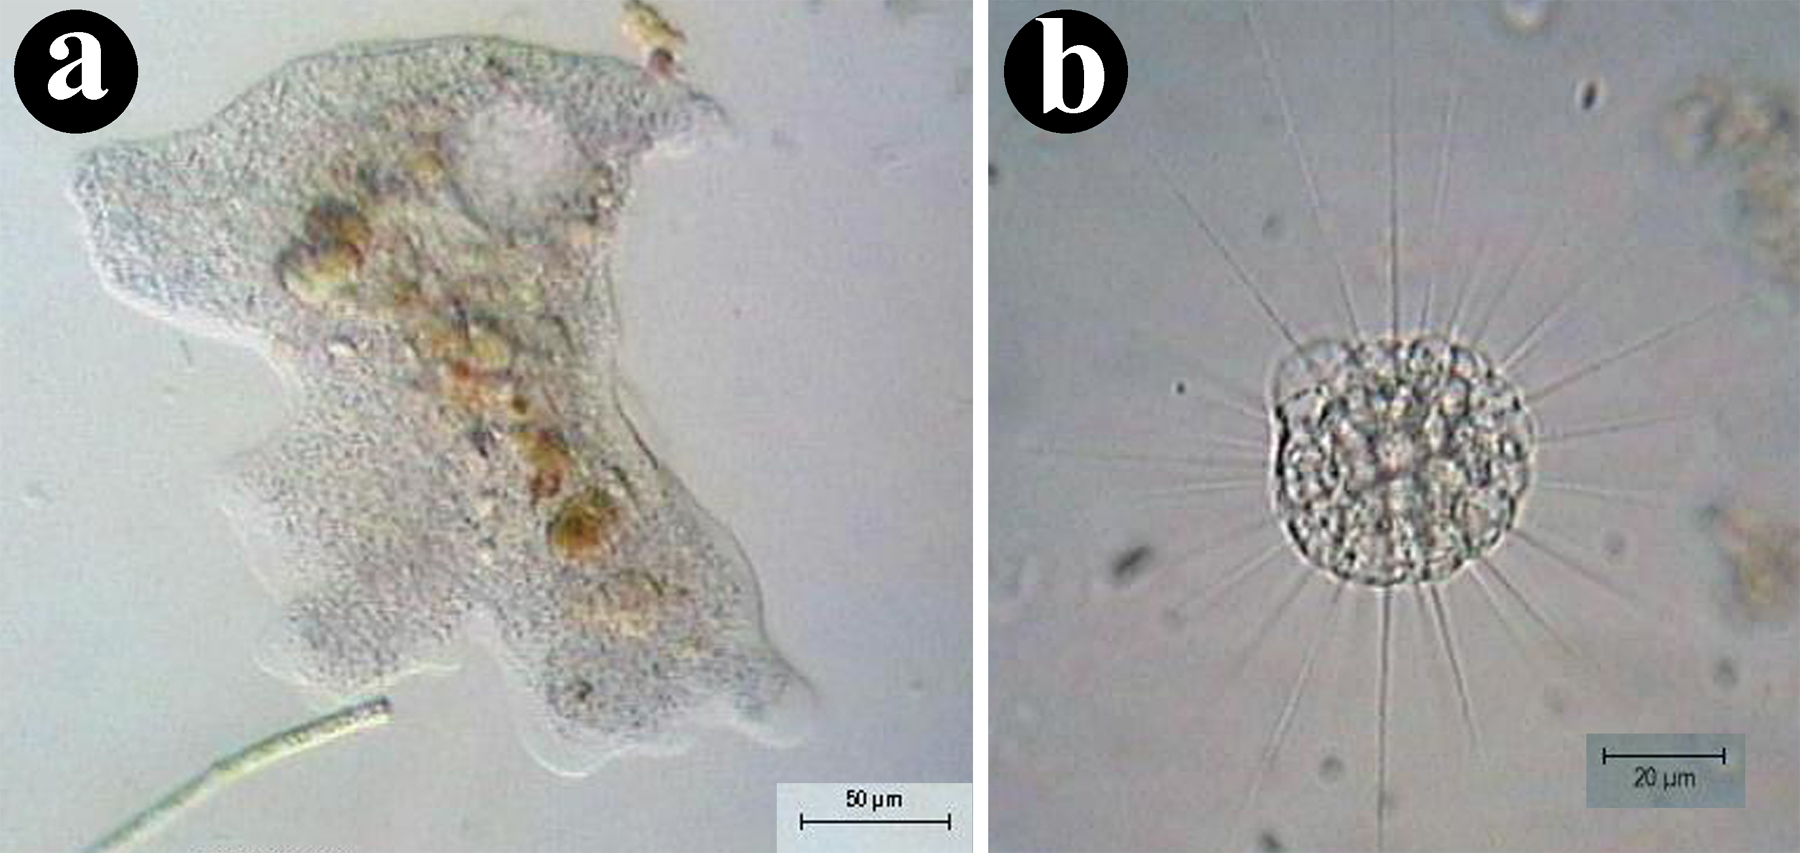 Figure 5: Asymmetrical and spherical body shapes. (a) An organism with an asymmetrical bauplan (Amoeba proteus an amoeba). (b) An organism with a spherical bauplan (Actinophrys sol a heliozoan.